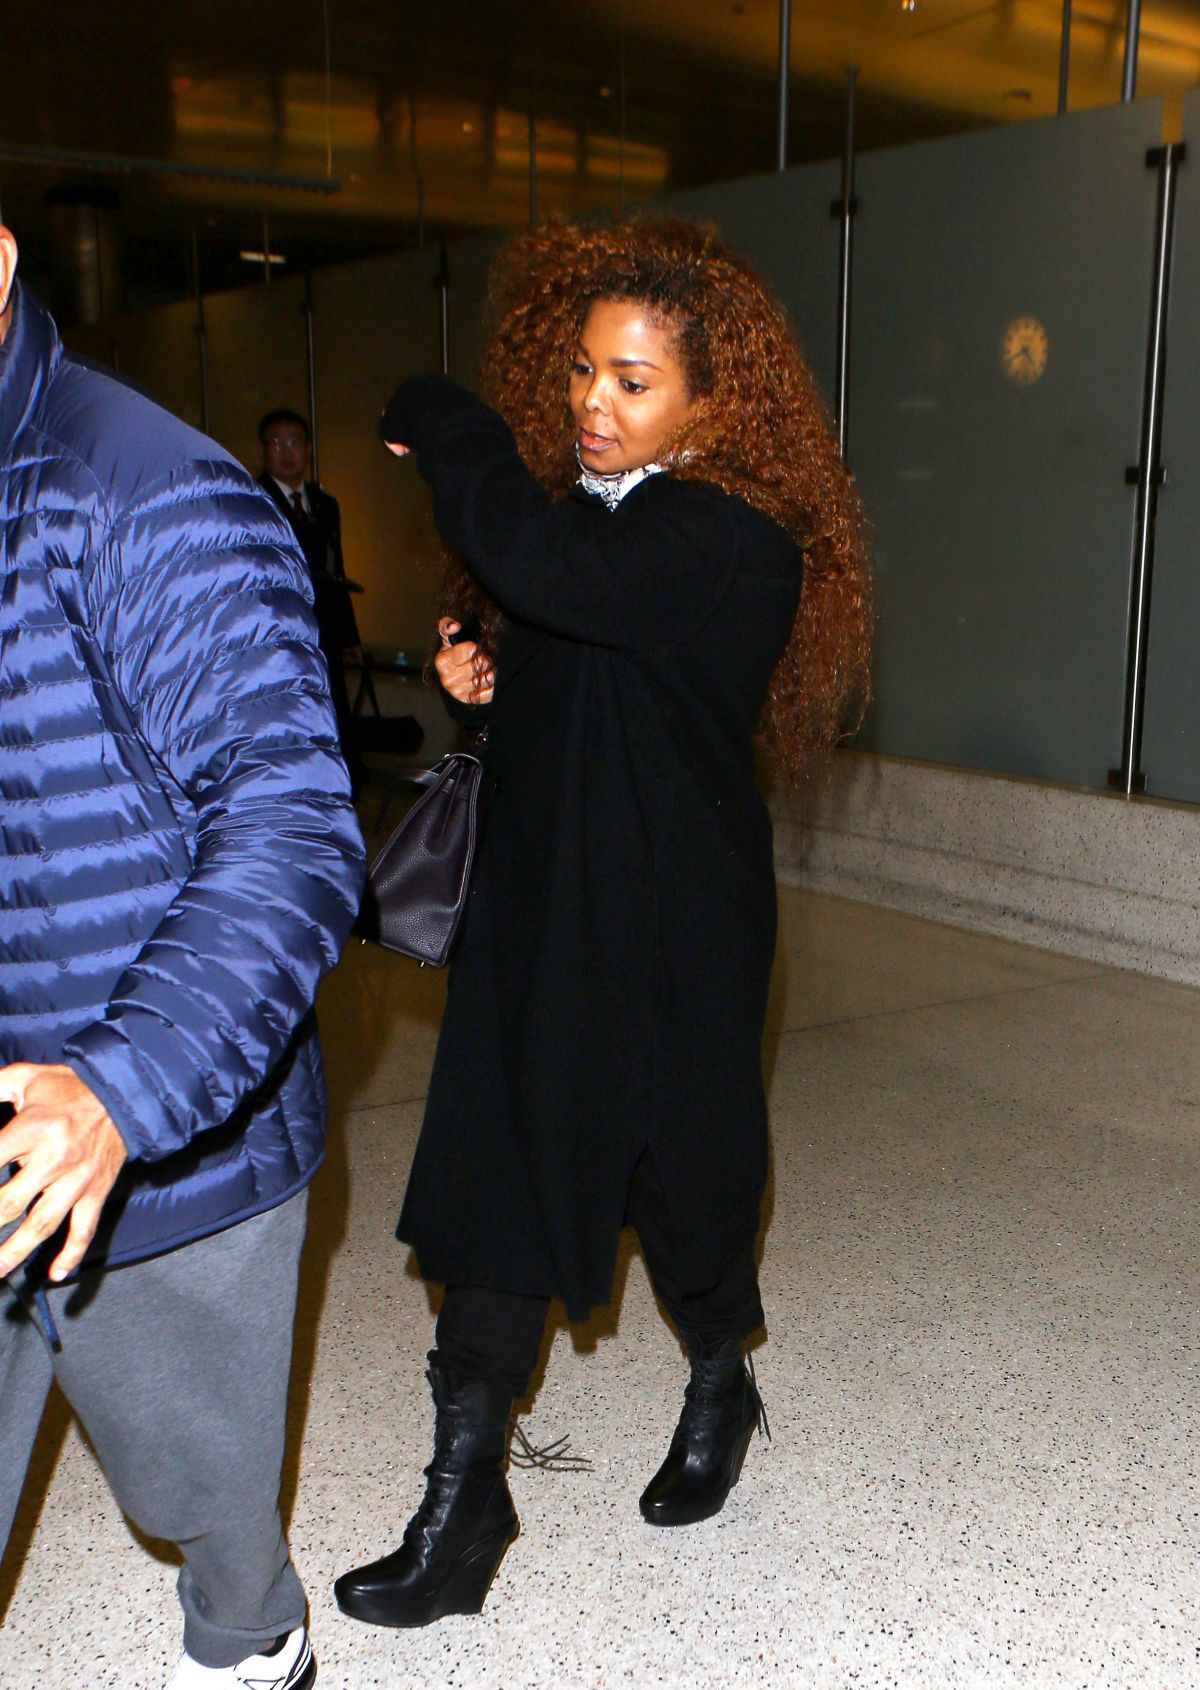 JANET JACKSON at LAX Airport in Los Angeles 03/09/2016